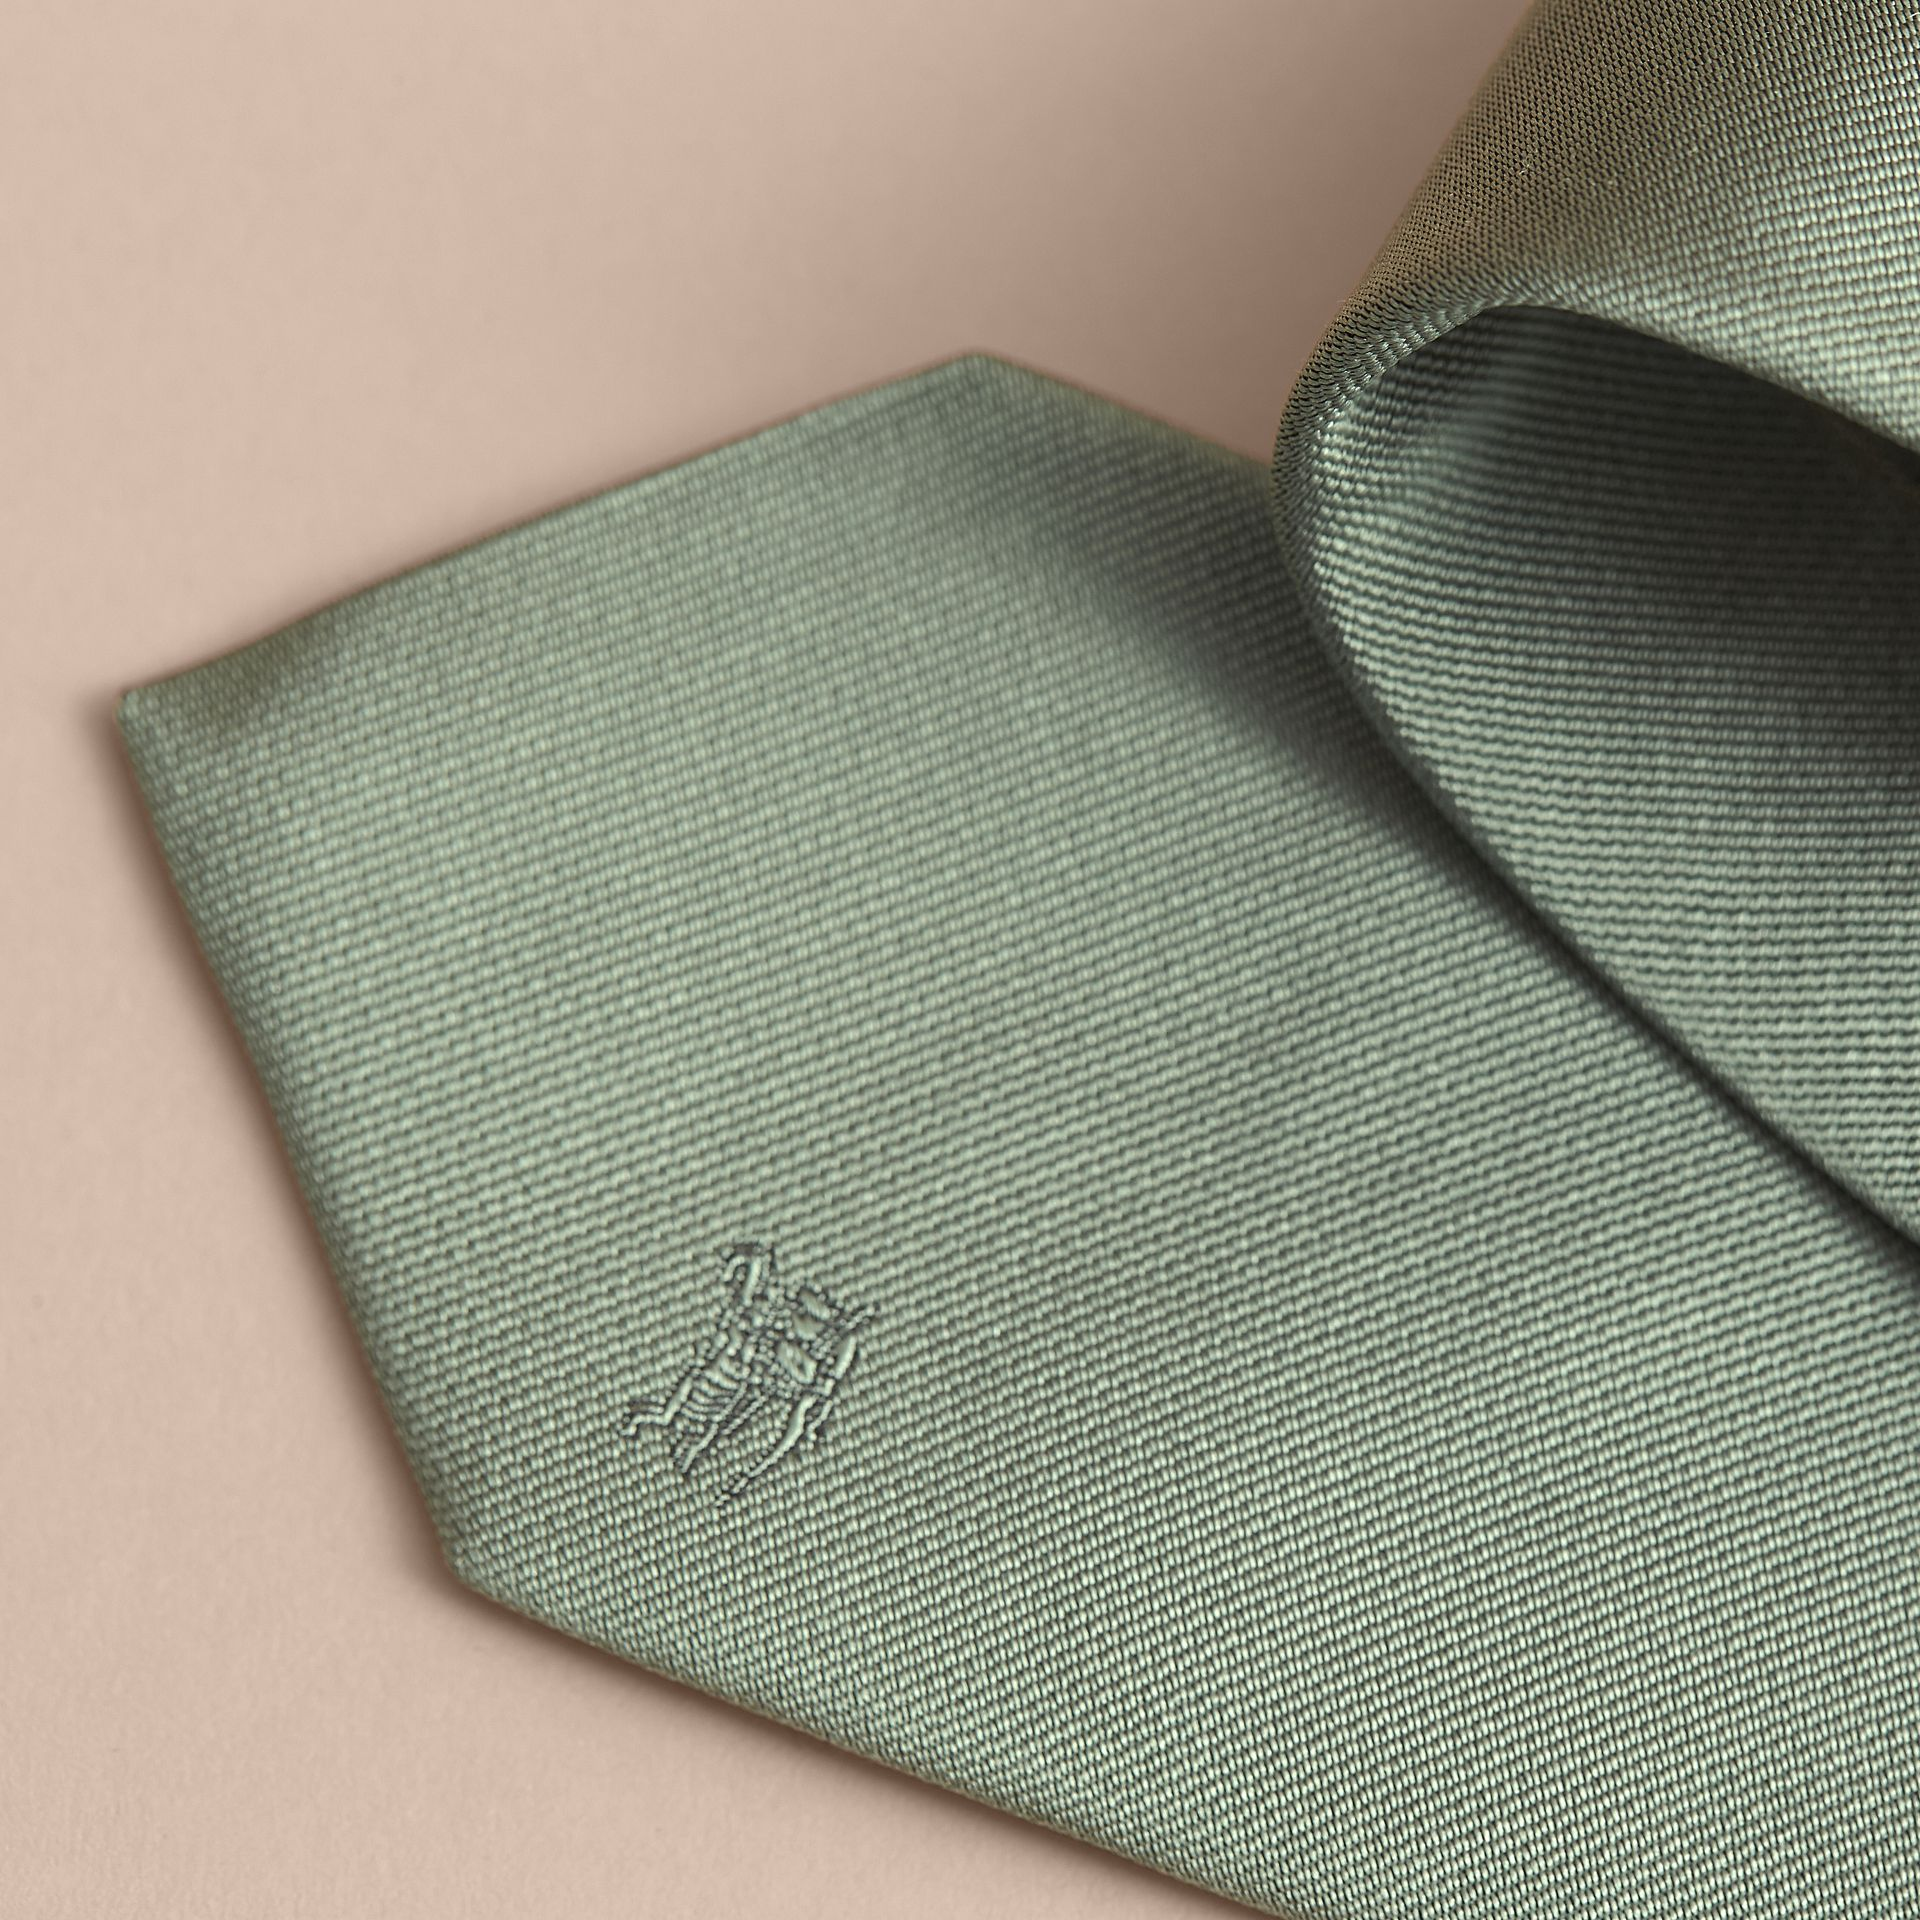 Modern Cut Silk Twill Tie in Eucalyptus Green - Men | Burberry Singapore - gallery image 2